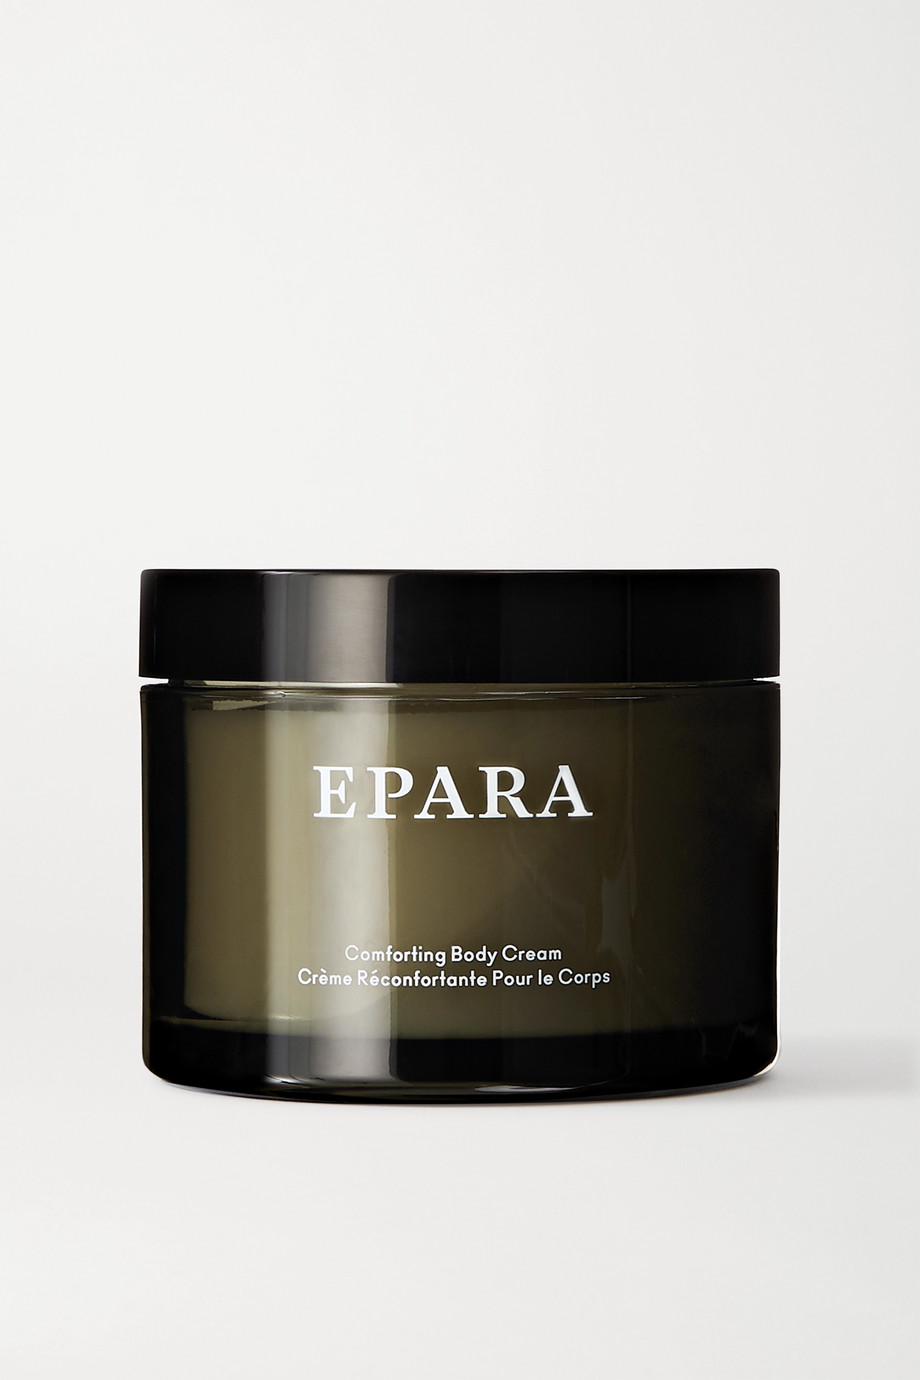 Epara Comforting Body Cream, 250ml